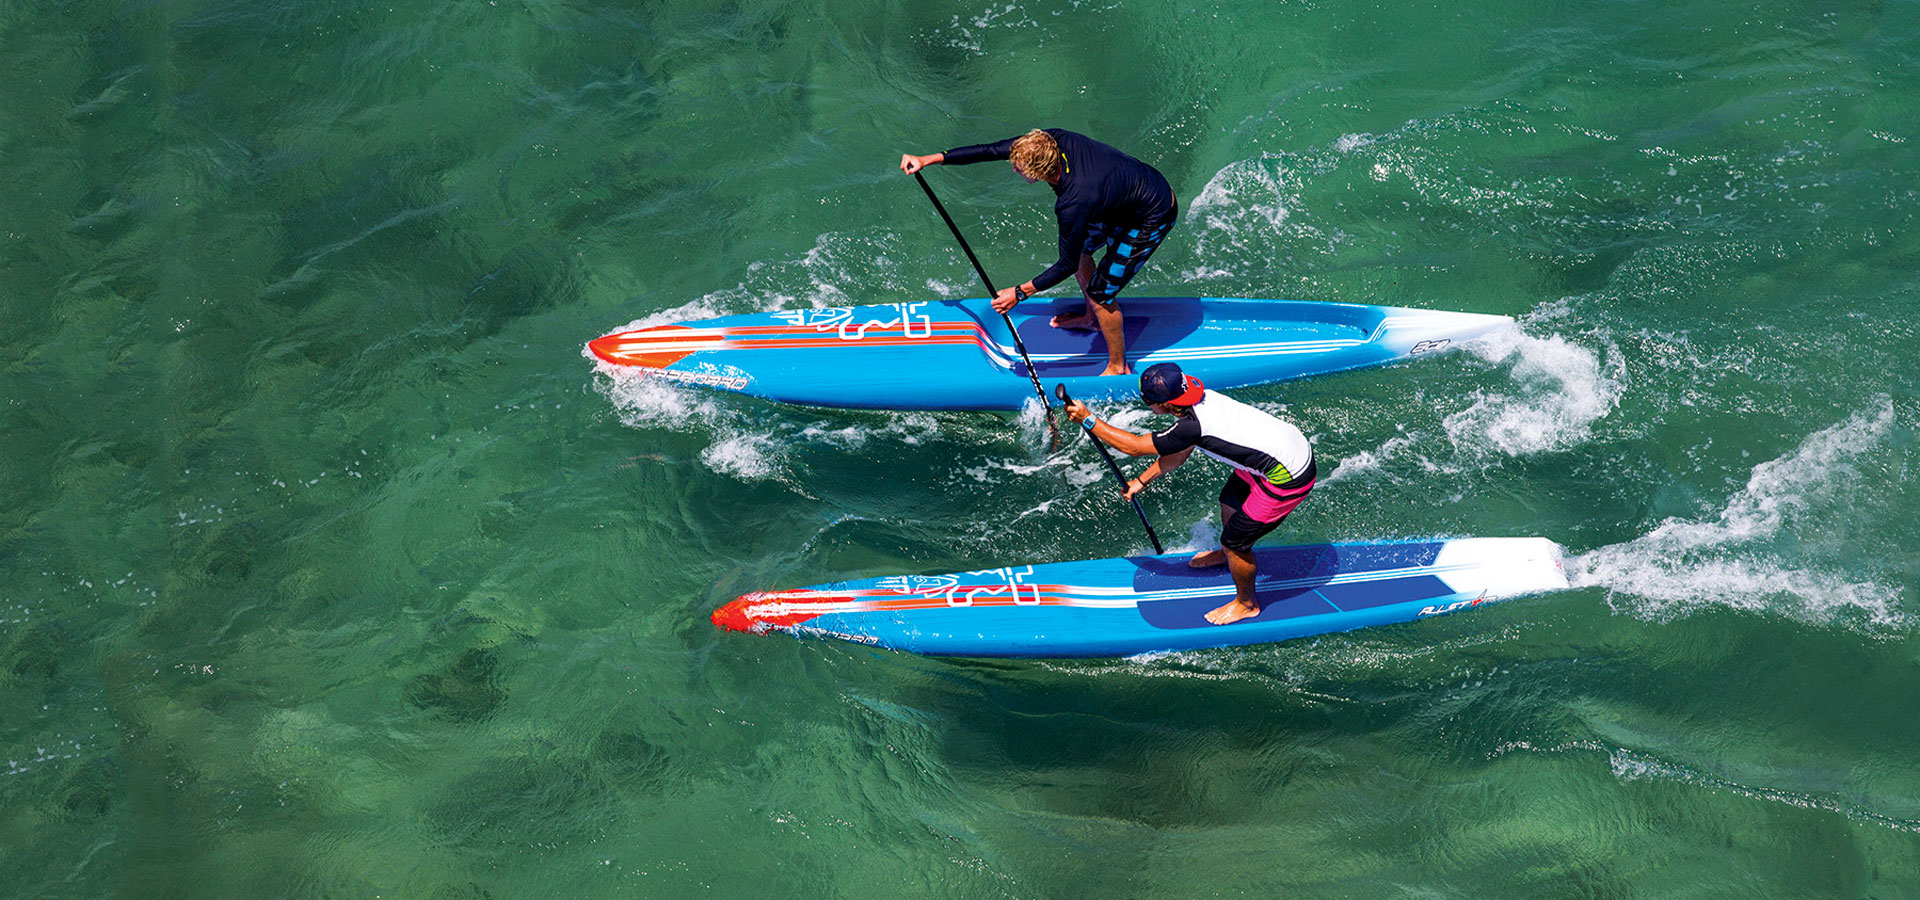 Starboard_sup_Race_1920